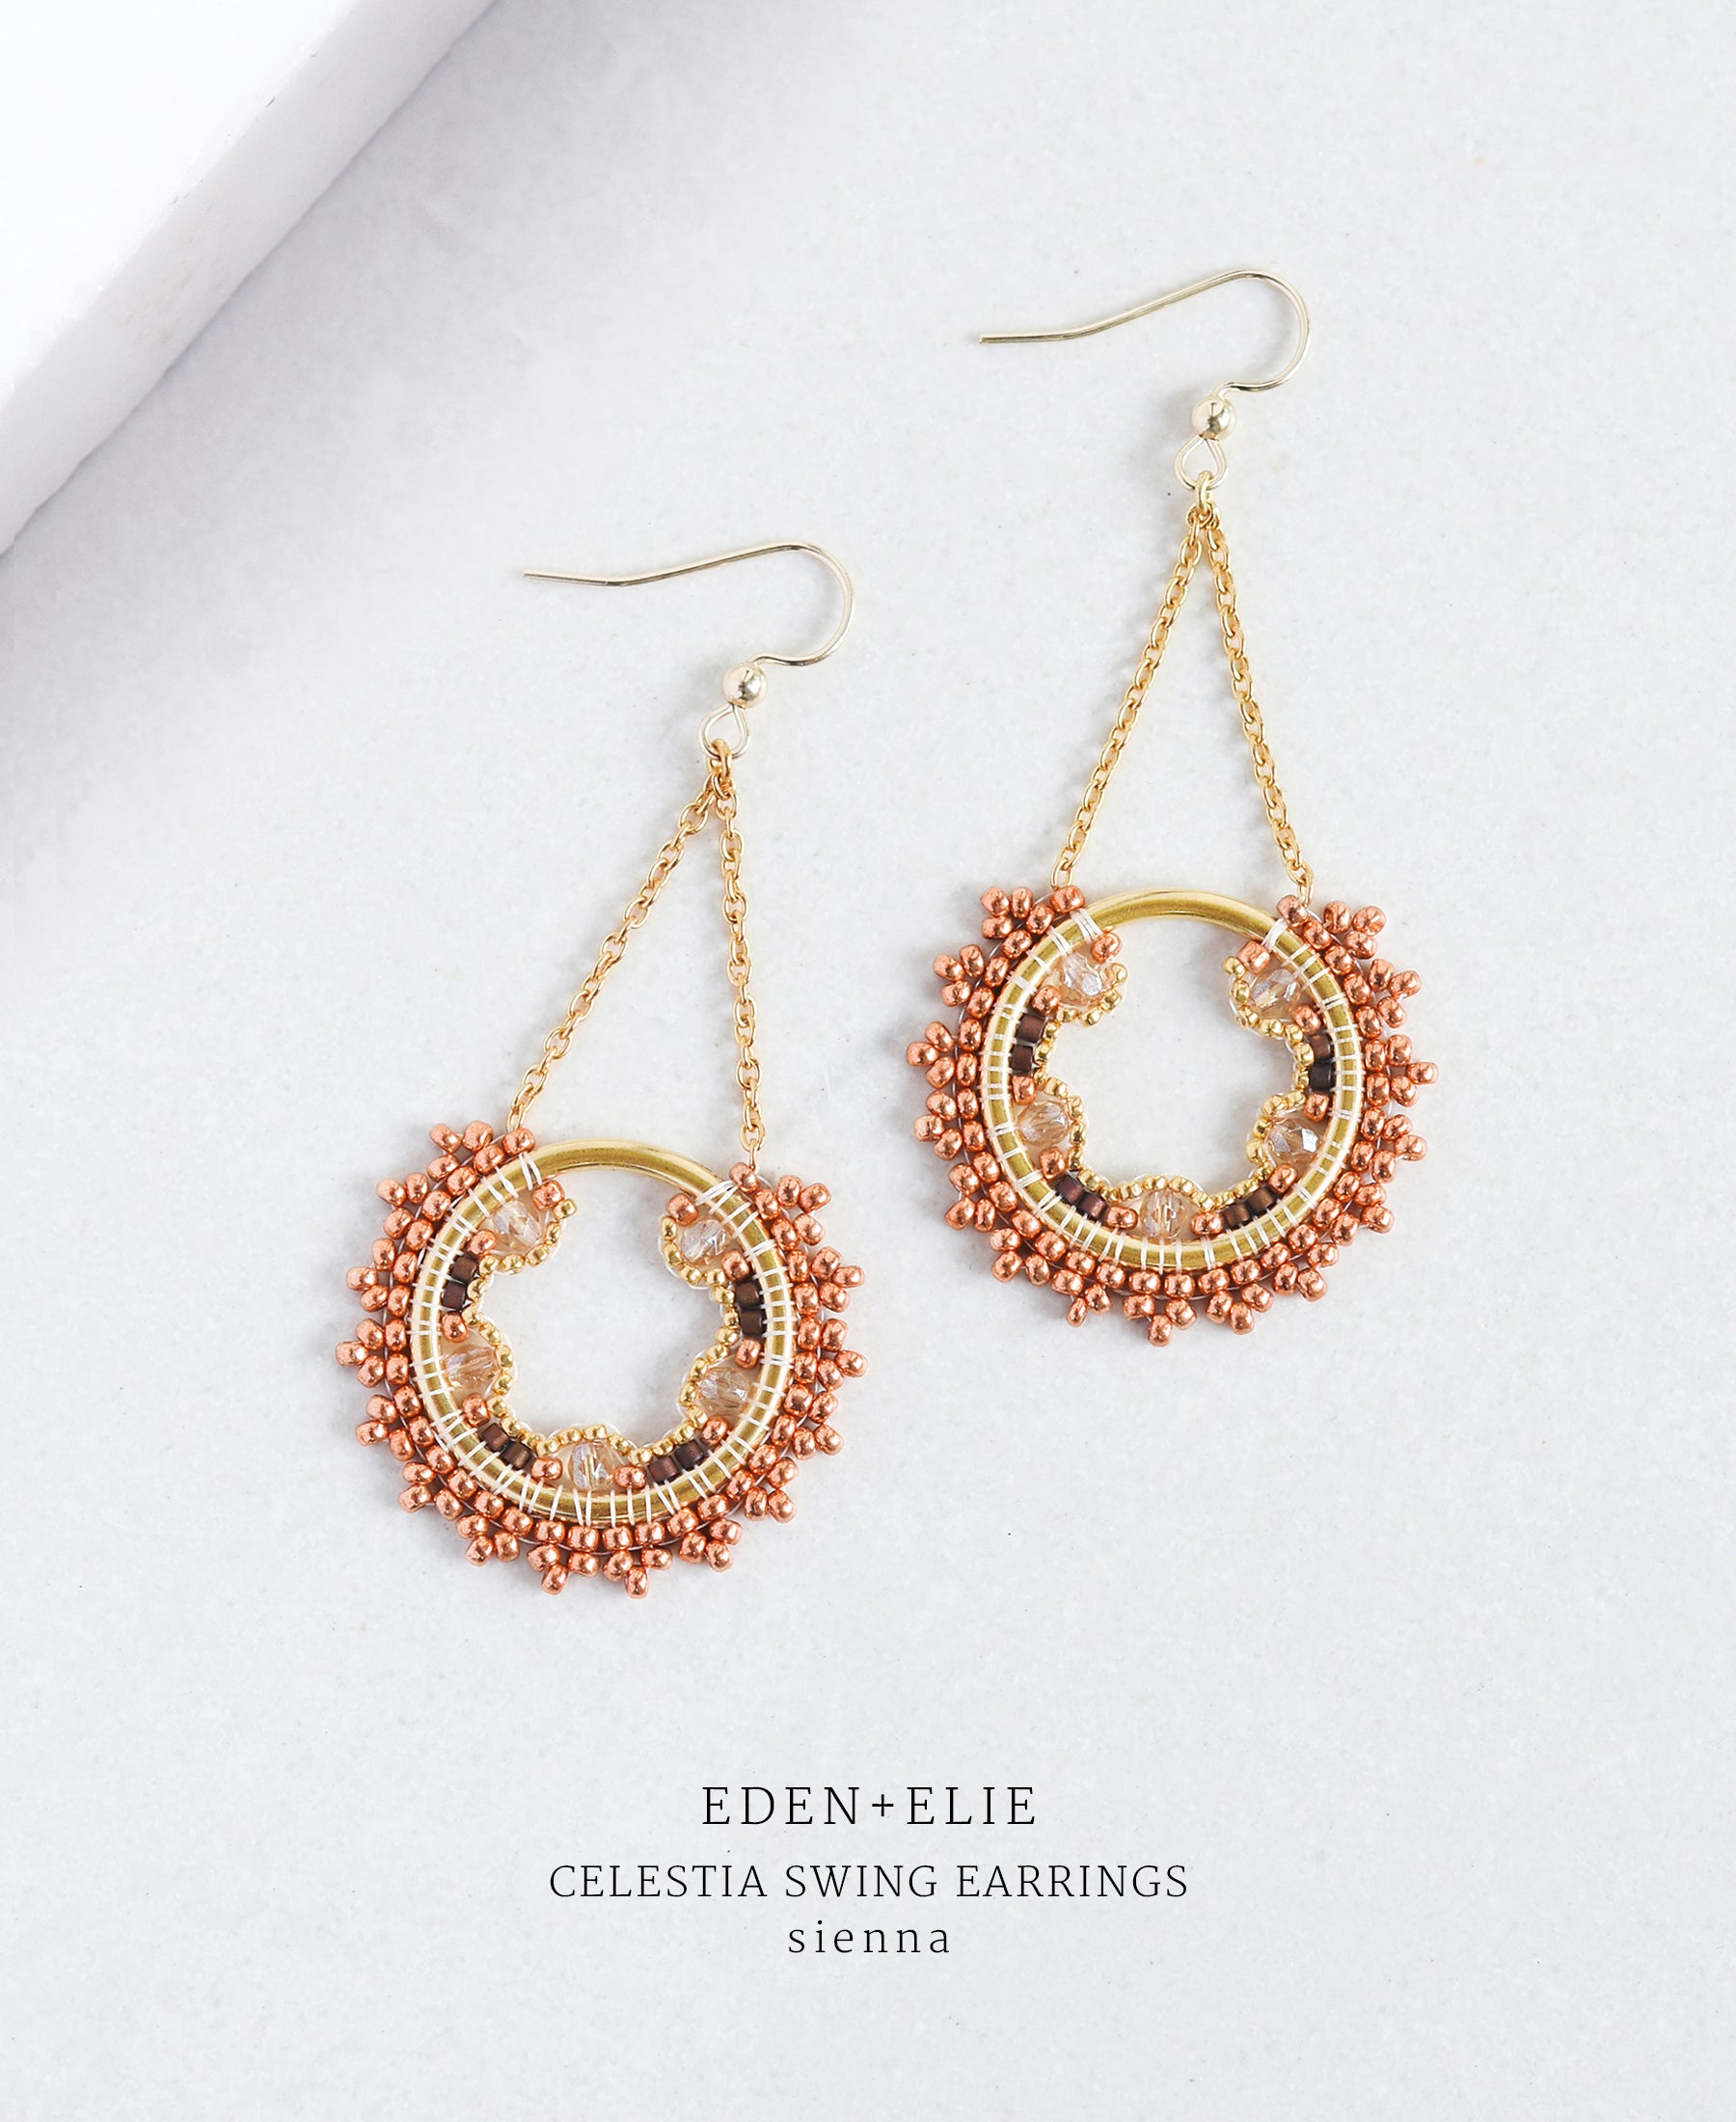 EDEN + ELIE Celestia swing earrings - sienna brown